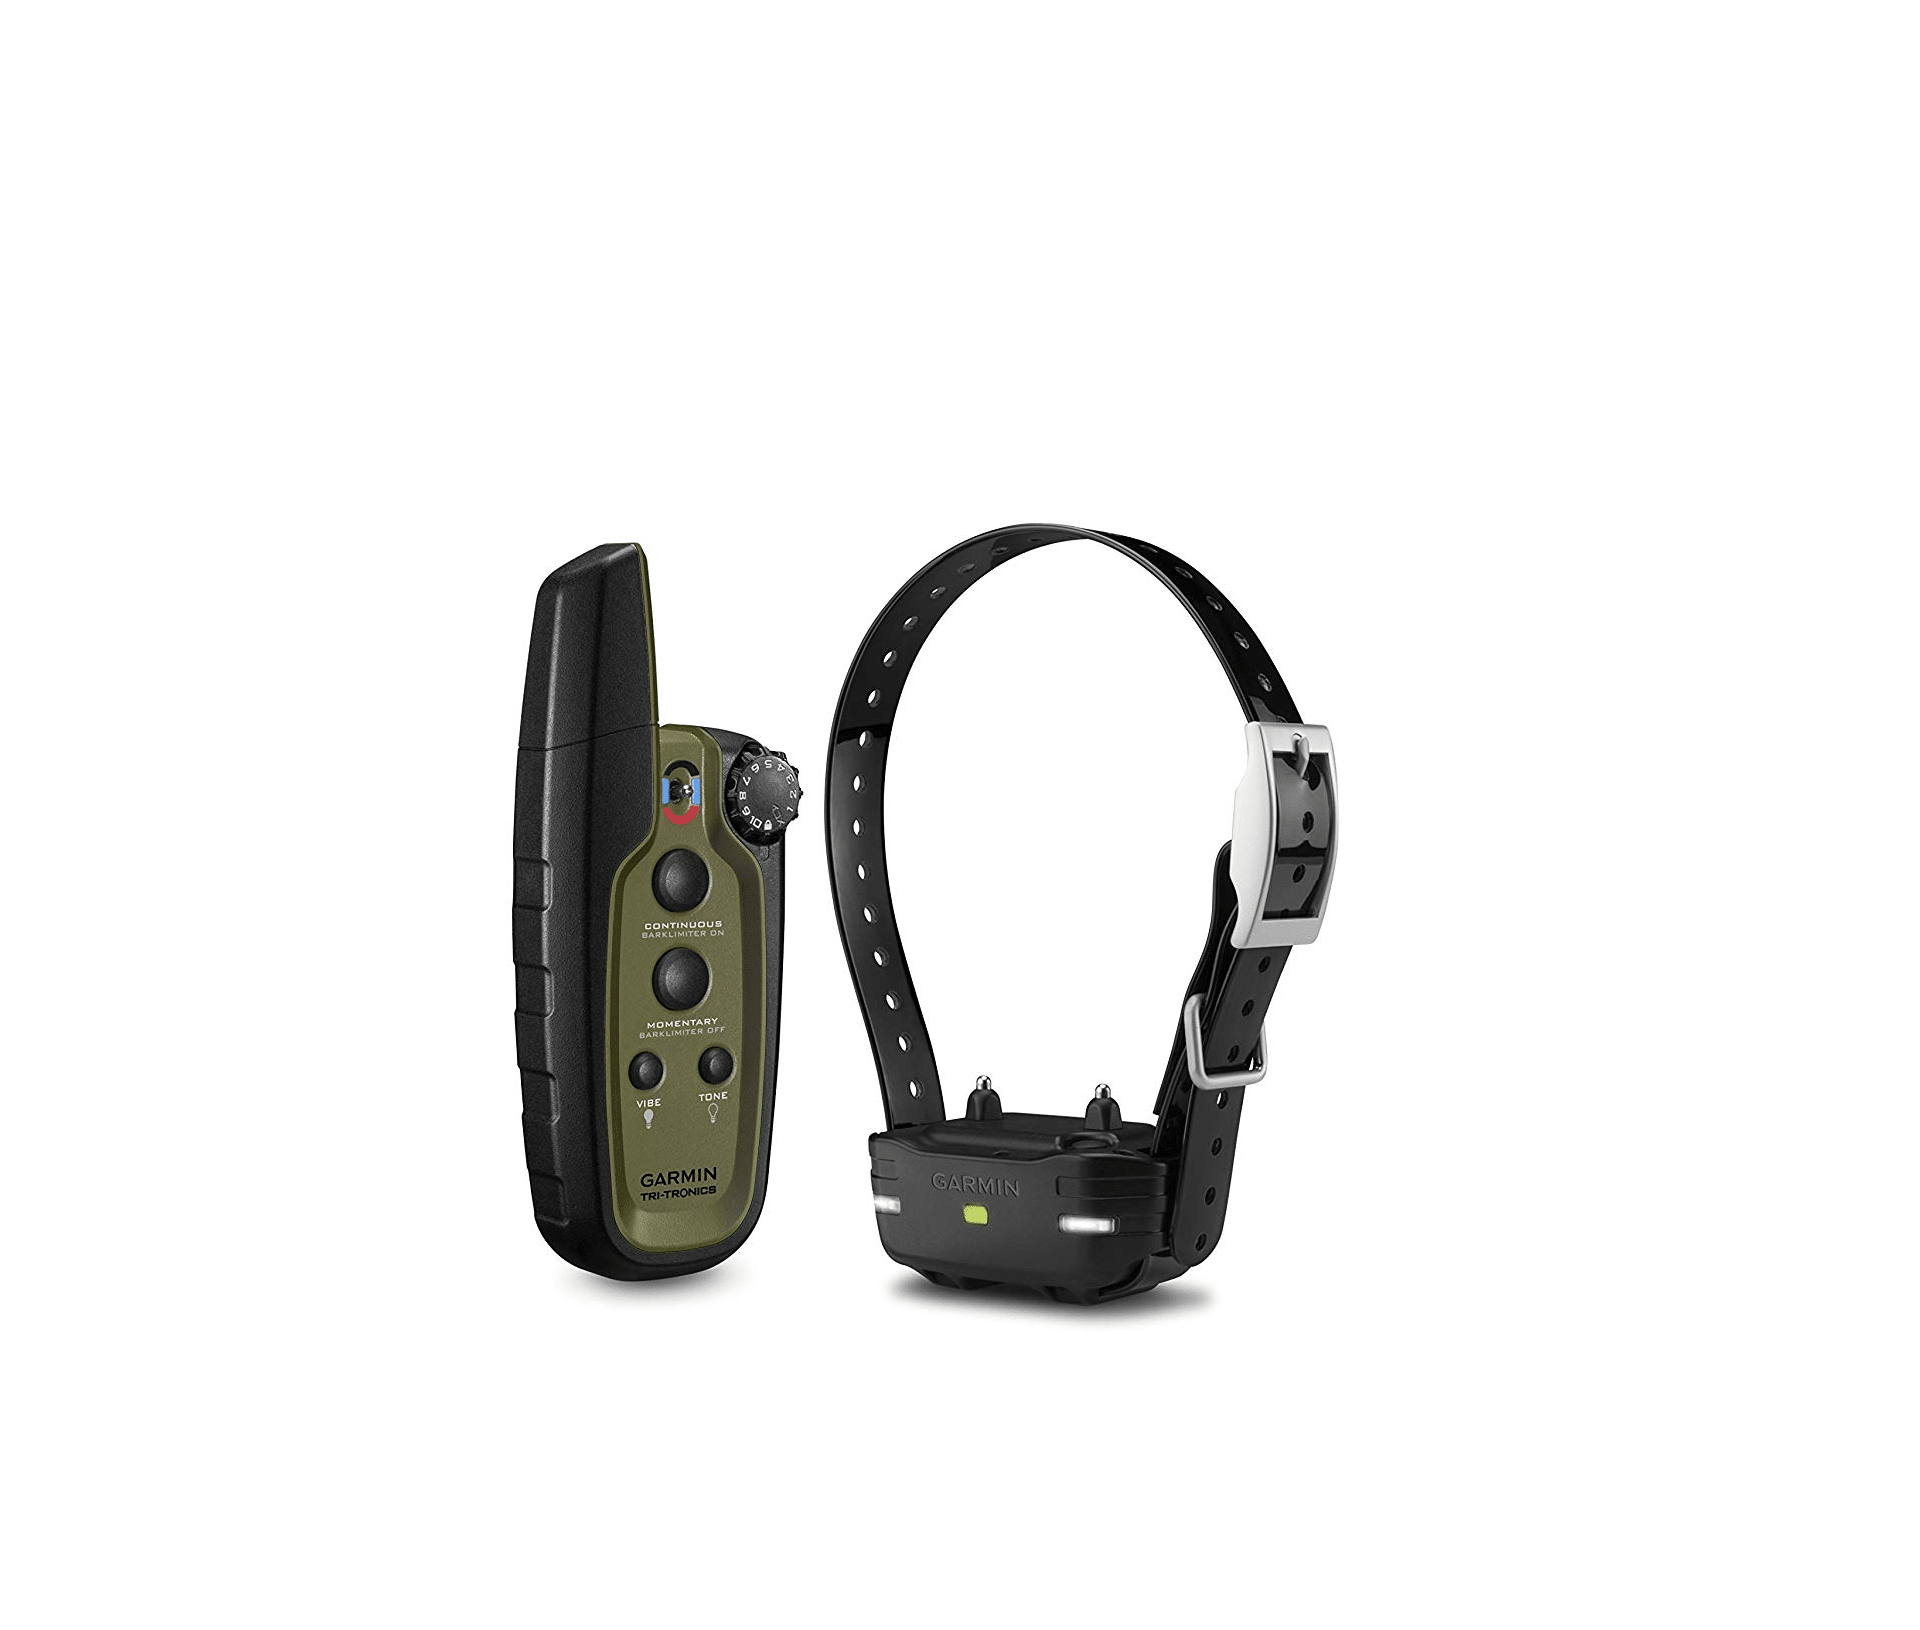 Garmin Sport PRO Bundle Dog Training Collar